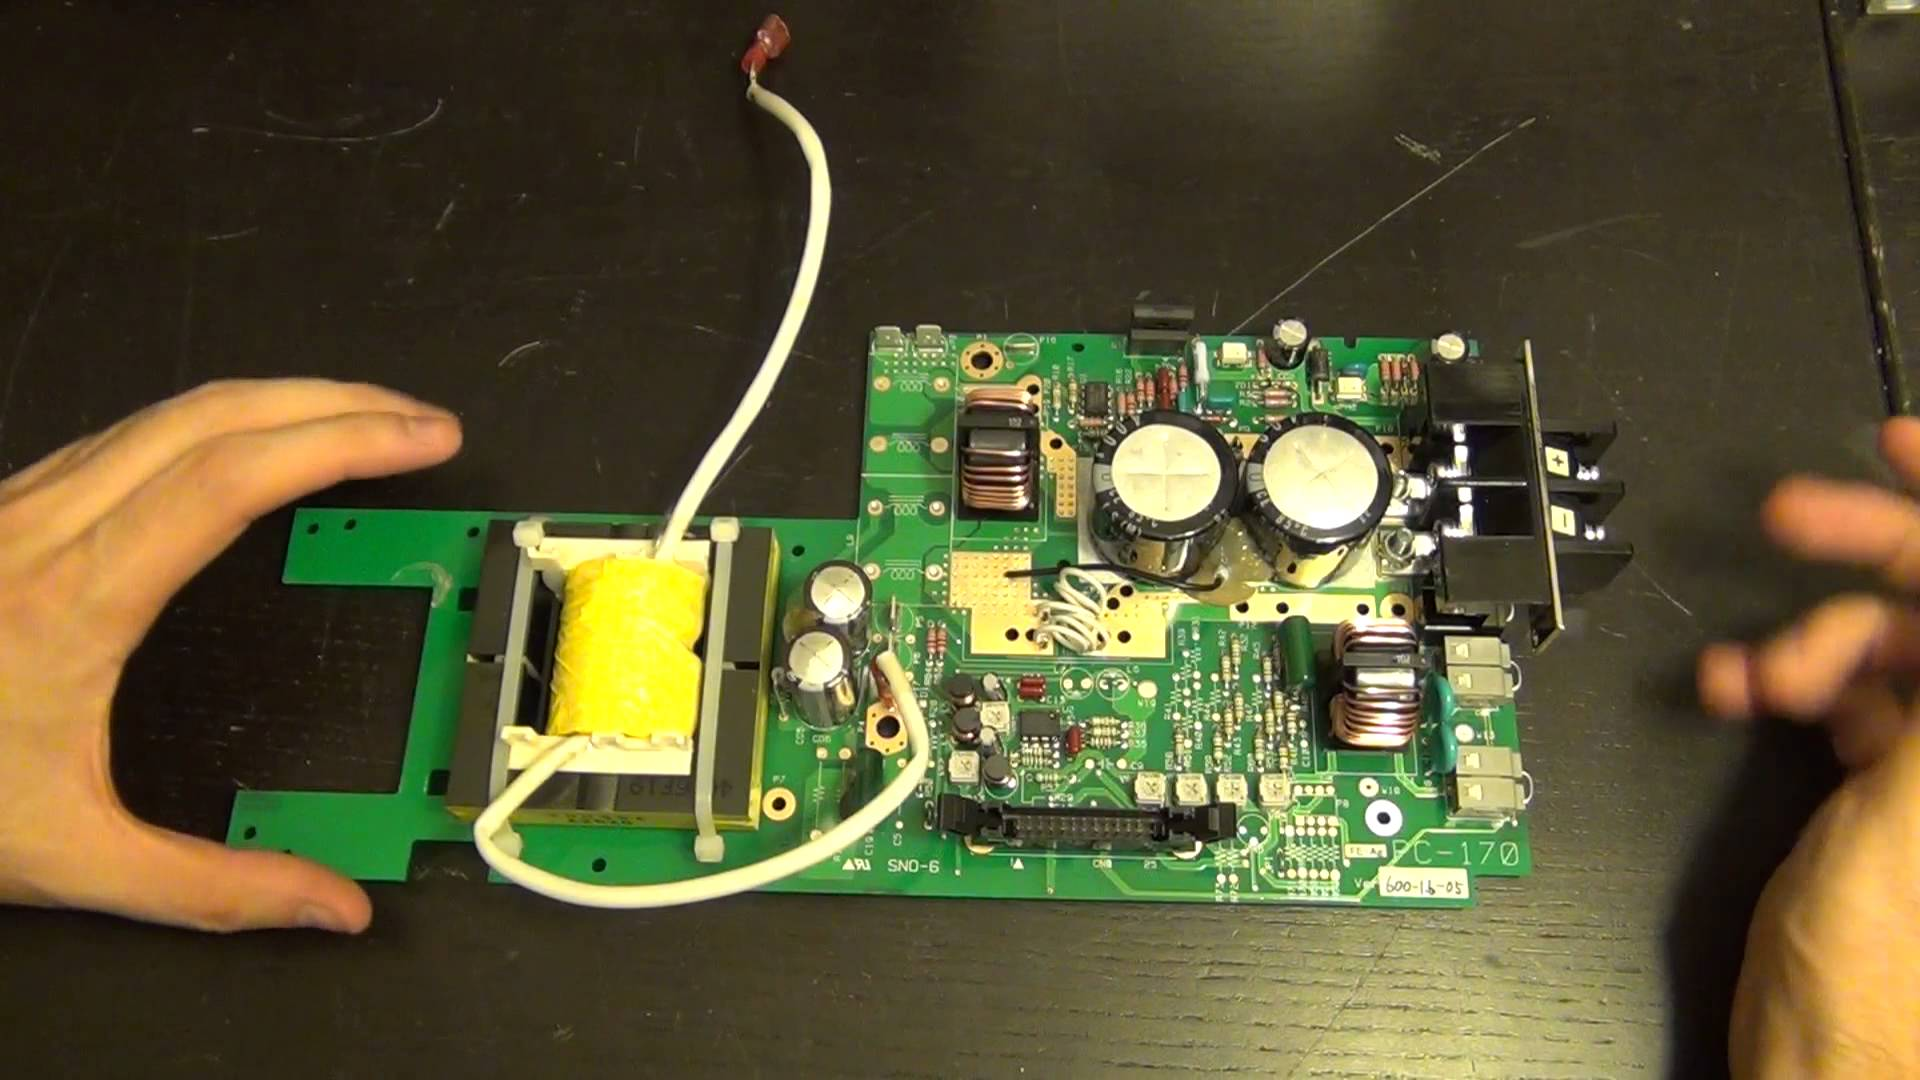 Teardown and Repair of an Agilent 33250A Function and Arbitrary Waveform Generator